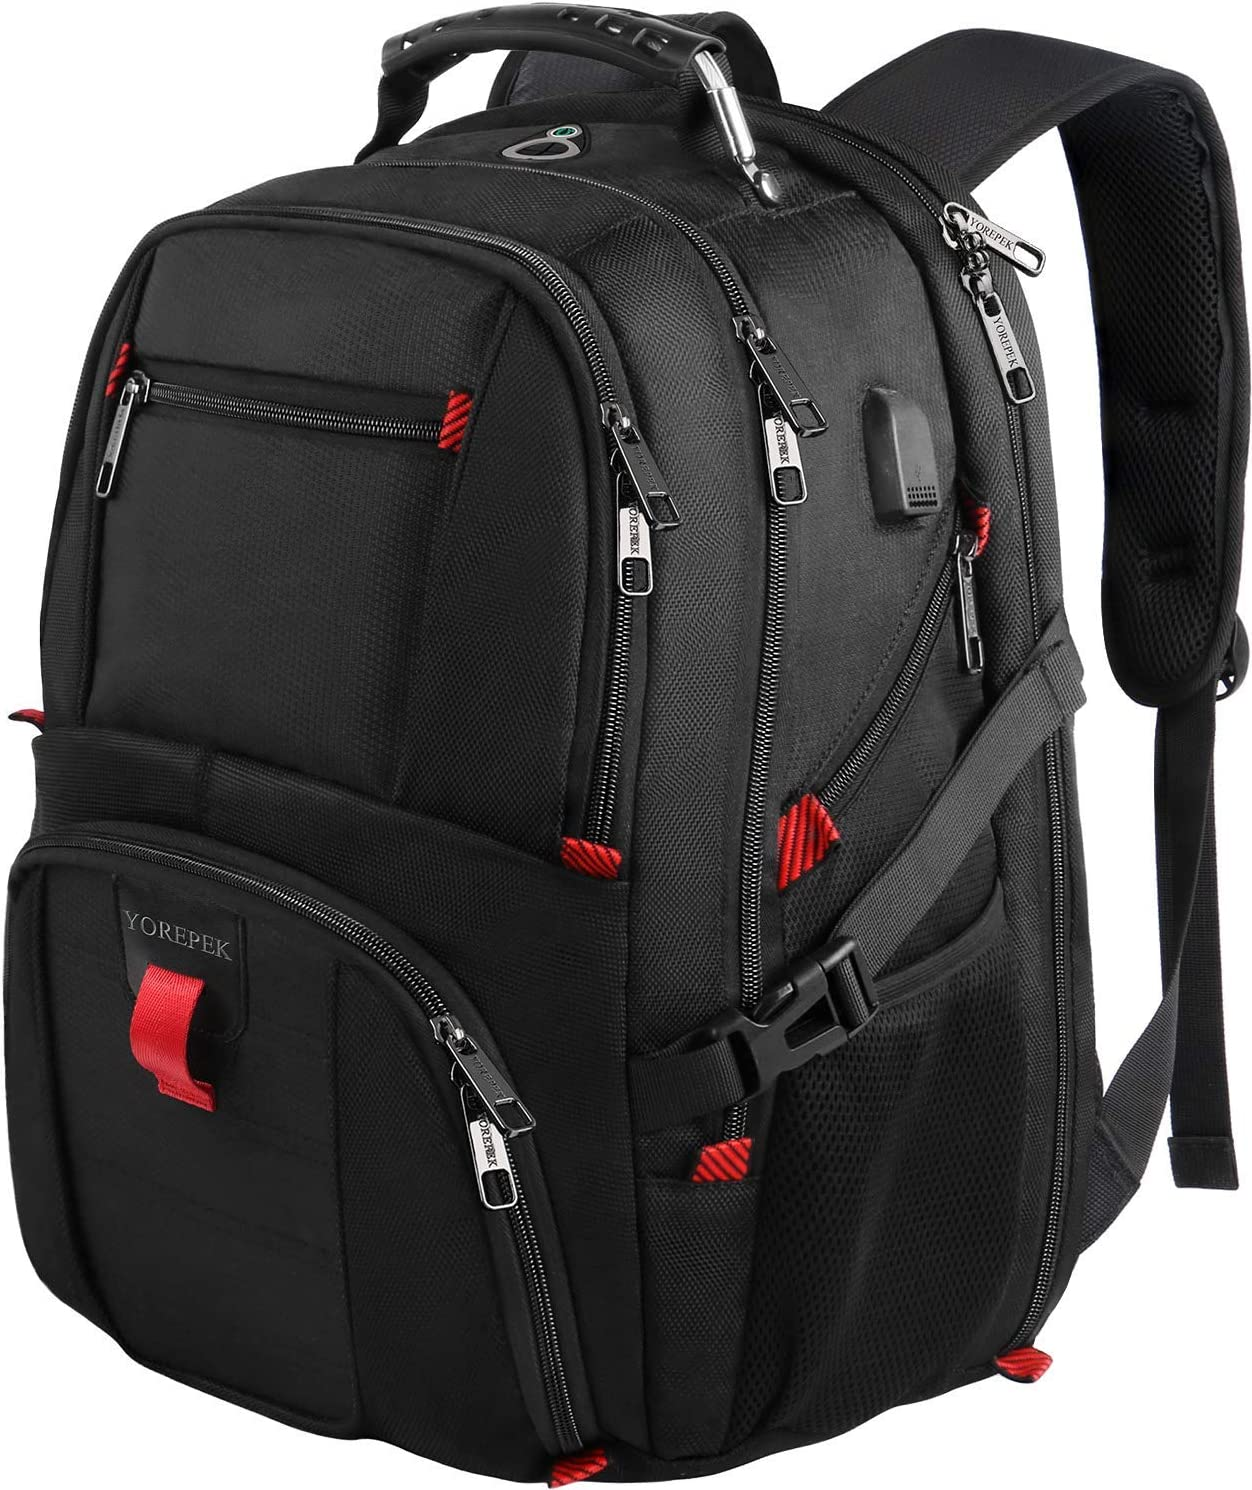 Men Laptop Backpack Water Resistant USB Charger Port Headphone Hole Rucksack